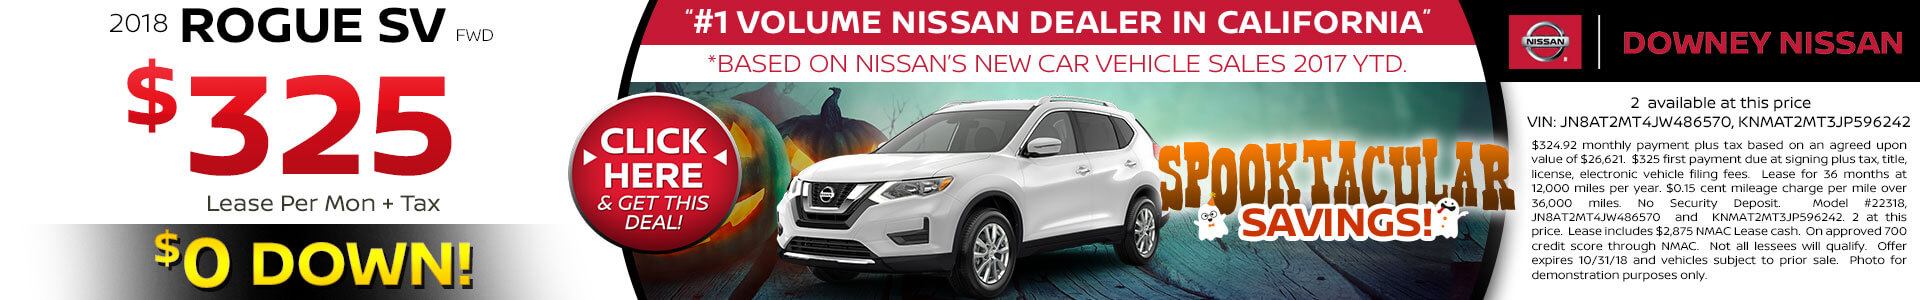 2018 Nissan Rogue - Lease for $325